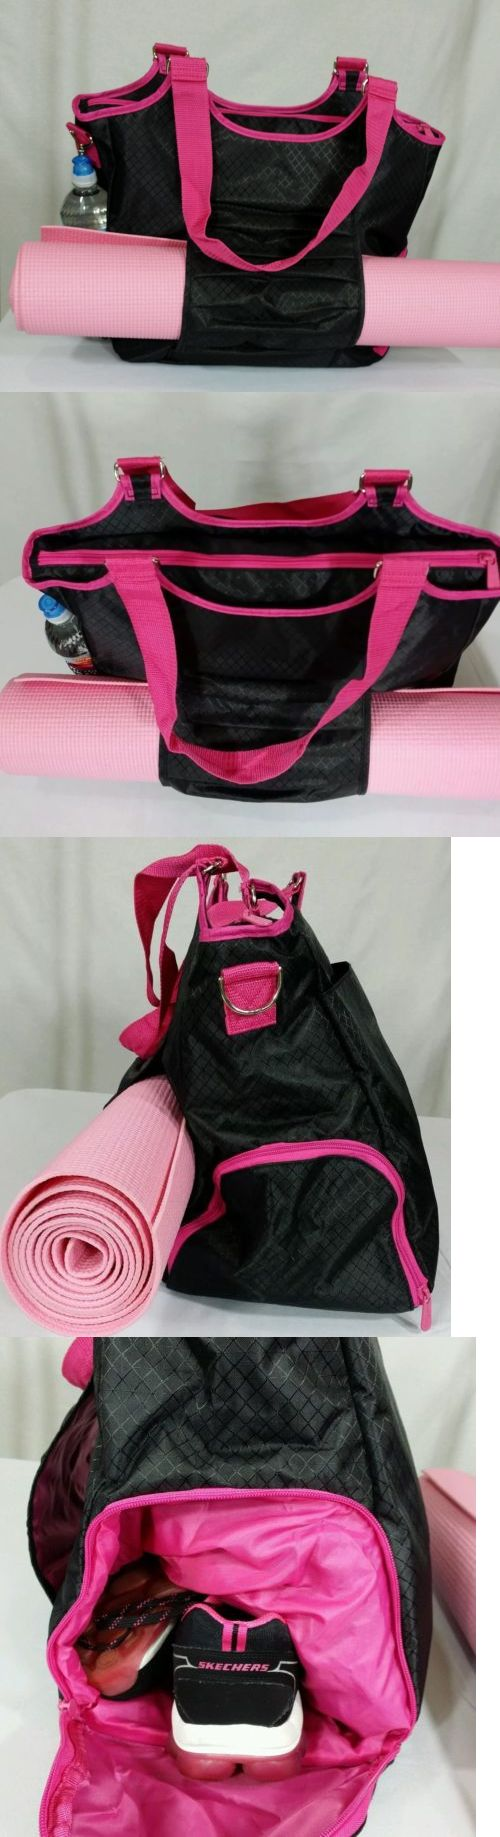 Gym Bags 68816: New Thirty-One 31 All Pro Tote Sports Gym Yoga Diaper Bag Black W Pink Free Ship -> BUY IT NOW ONLY: $56.25 on eBay!